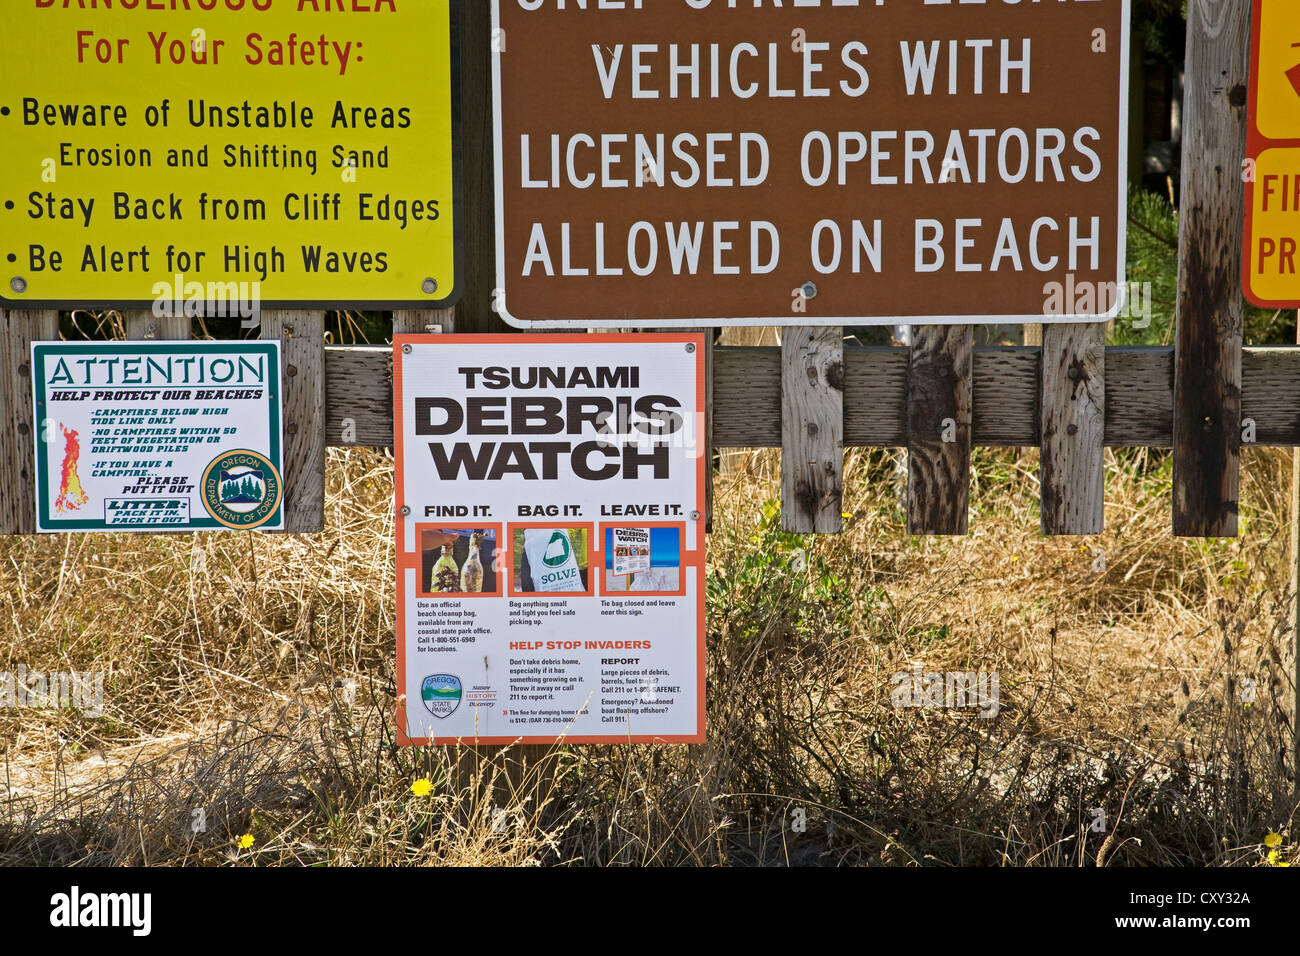 A sign warning visitors to look for Tsunami debris from the Japanese earthquake and tidal wave - Stock Image